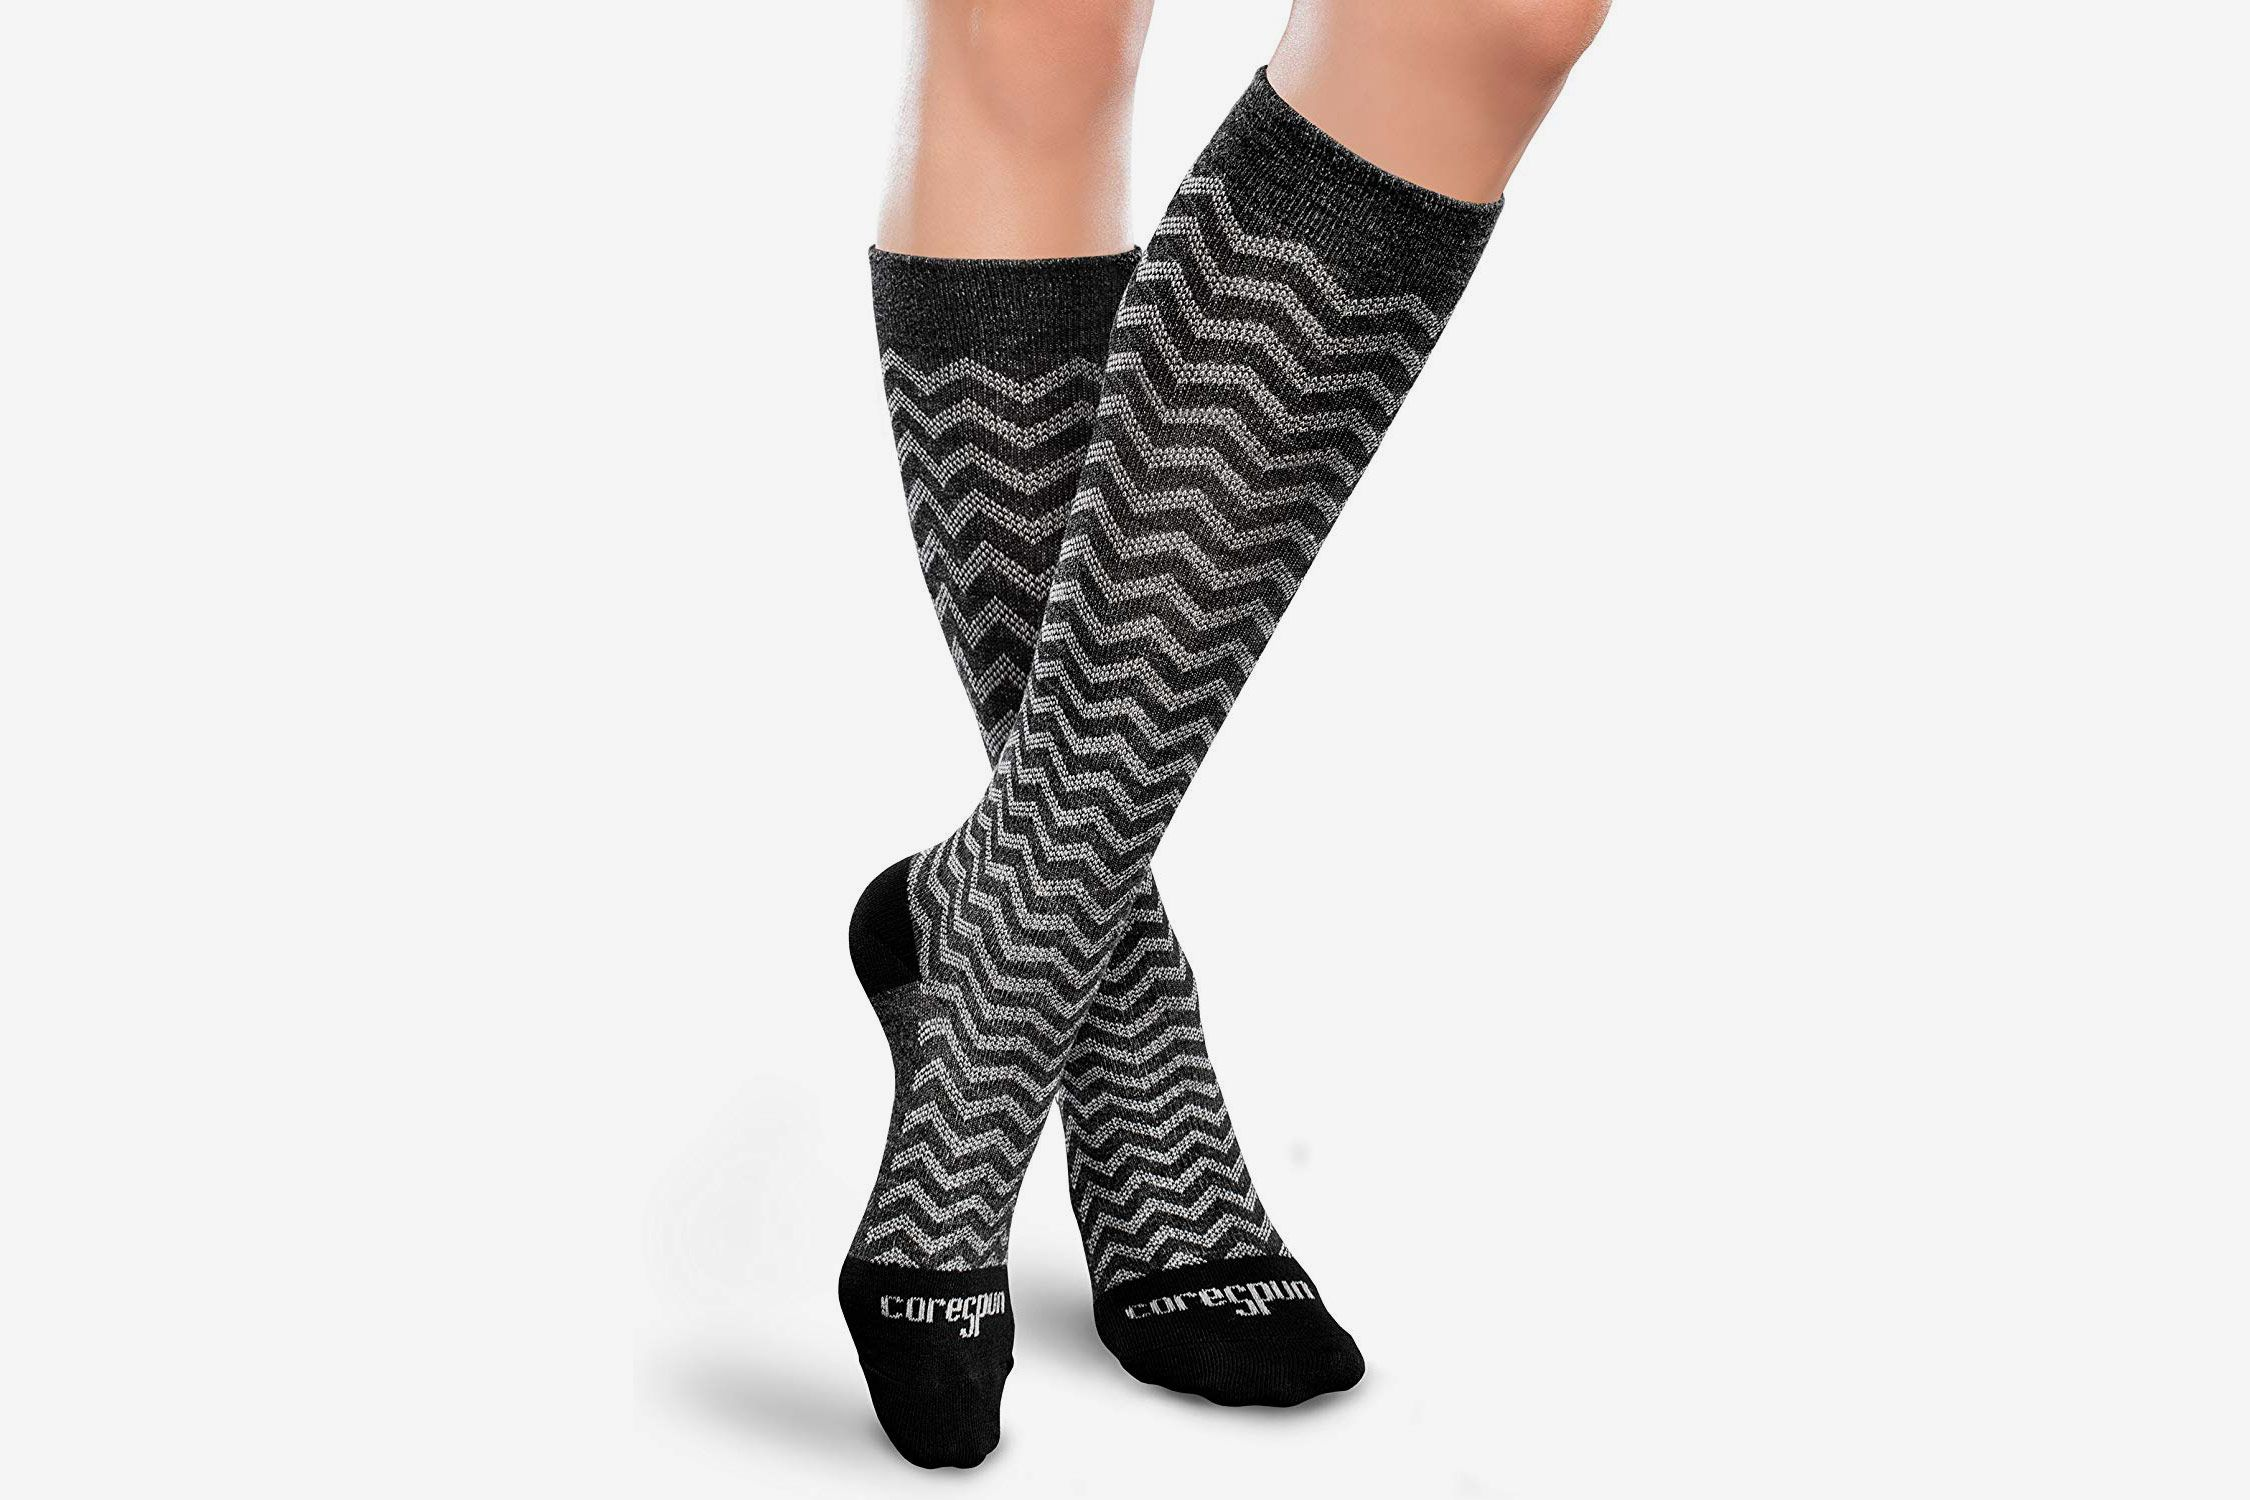 Therafirm Core-Spun 20-30mmHg Moderate Graduated Compression Support Trendsetter Knee High Socks